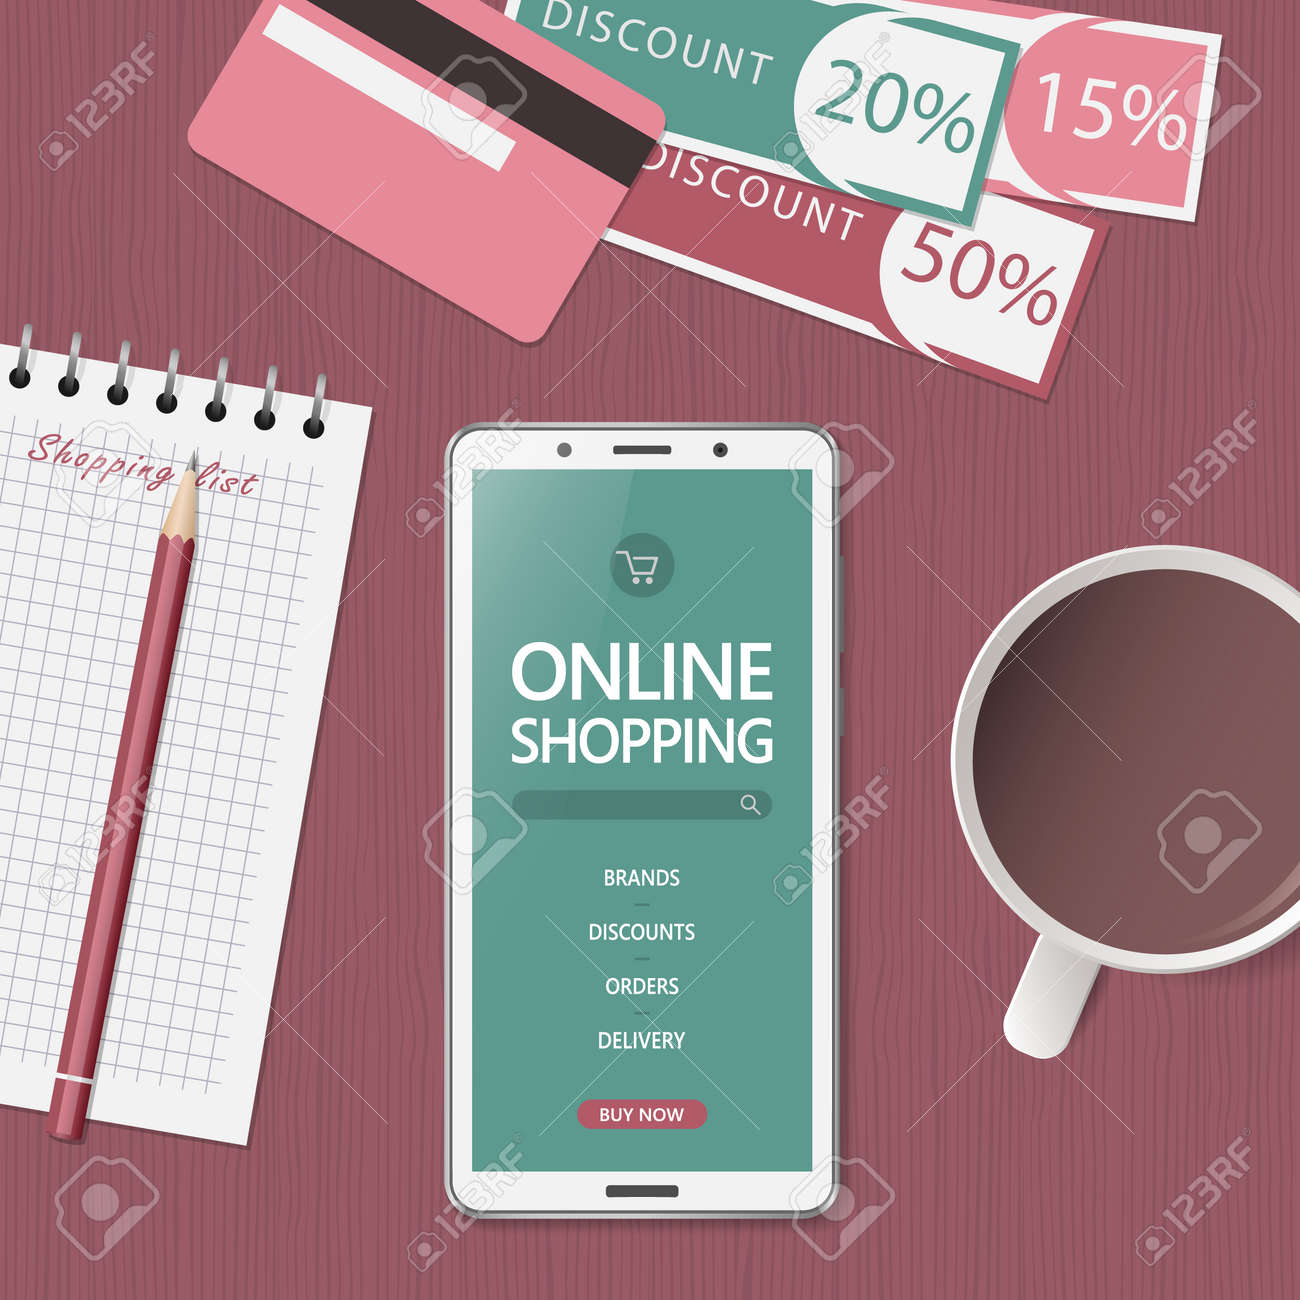 Online shopping concept. Online store website on phone screen. Workspace with smartphone, credit cards and discount coupons. Top view, flat lay. Vector illustration - 155948310